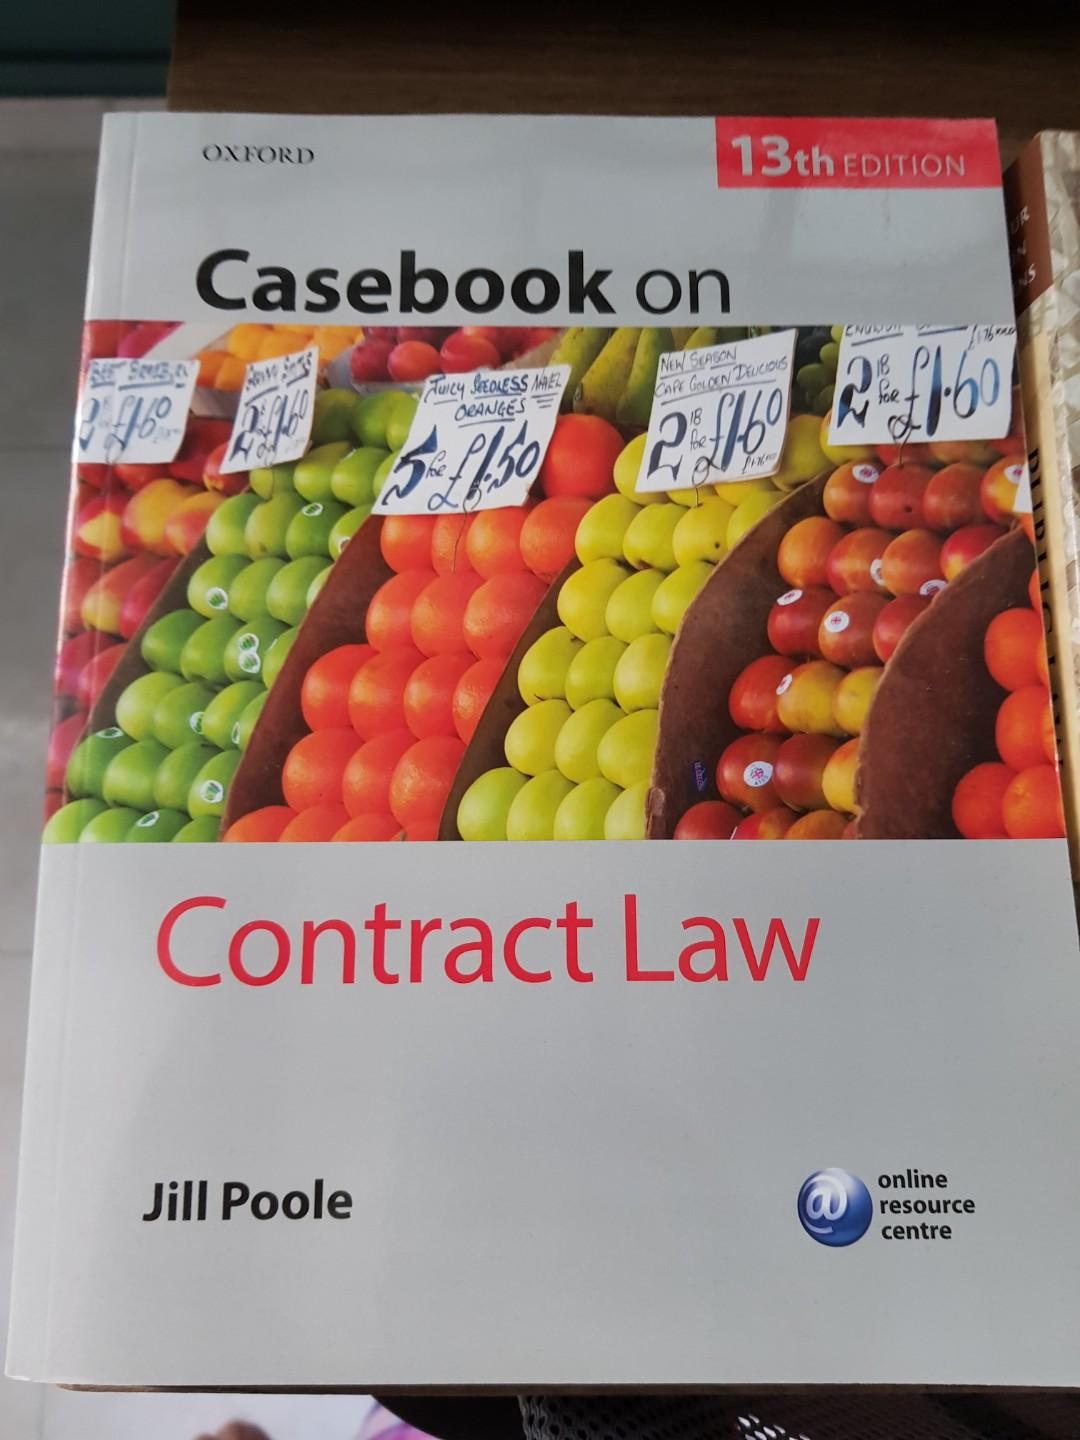 Casebook on Contract Law by Jill Poole 13th Edition